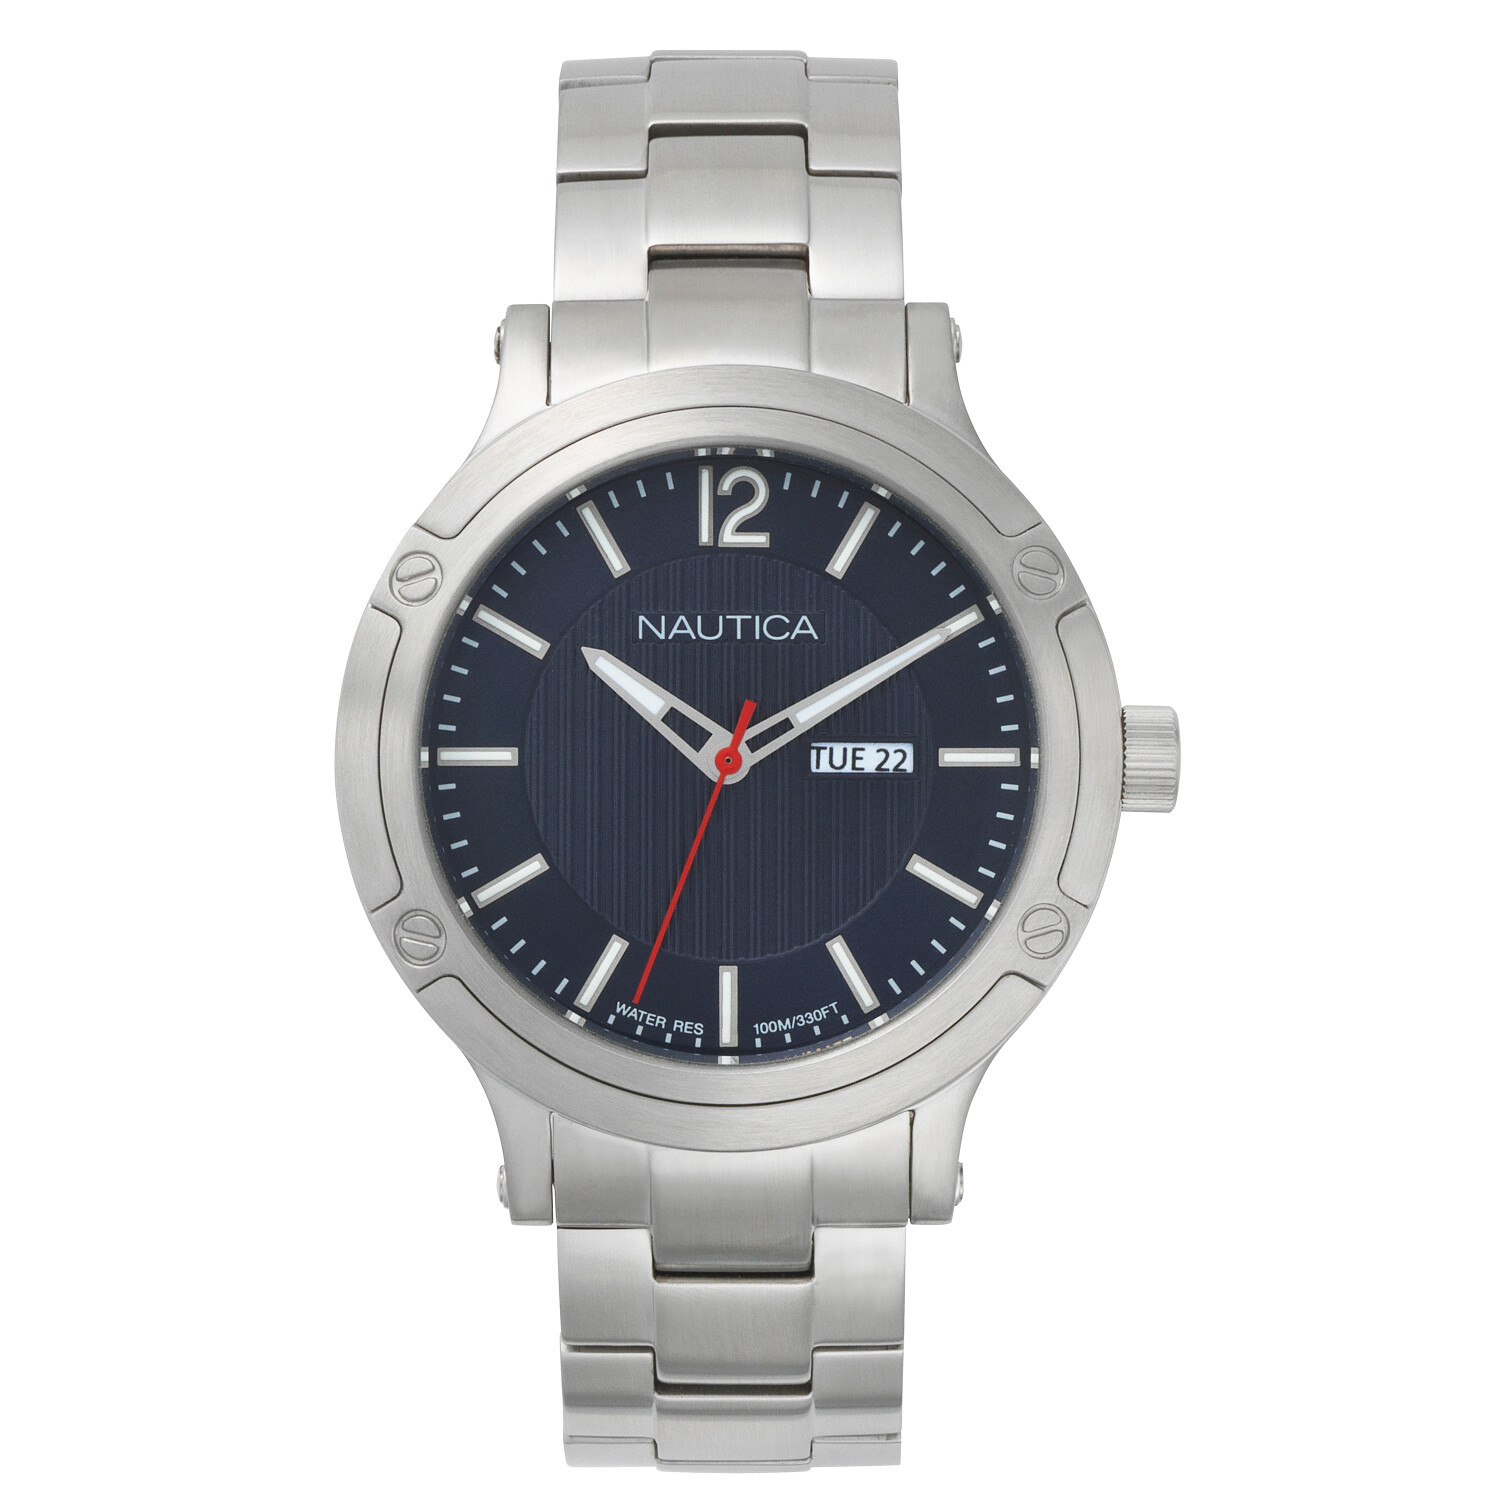 Nautica Watch NAPPRH019 Prh Porthole, Analog, Water Resistant, Calendar, Stainless Steel Band, 3 Hand Movement, Blue